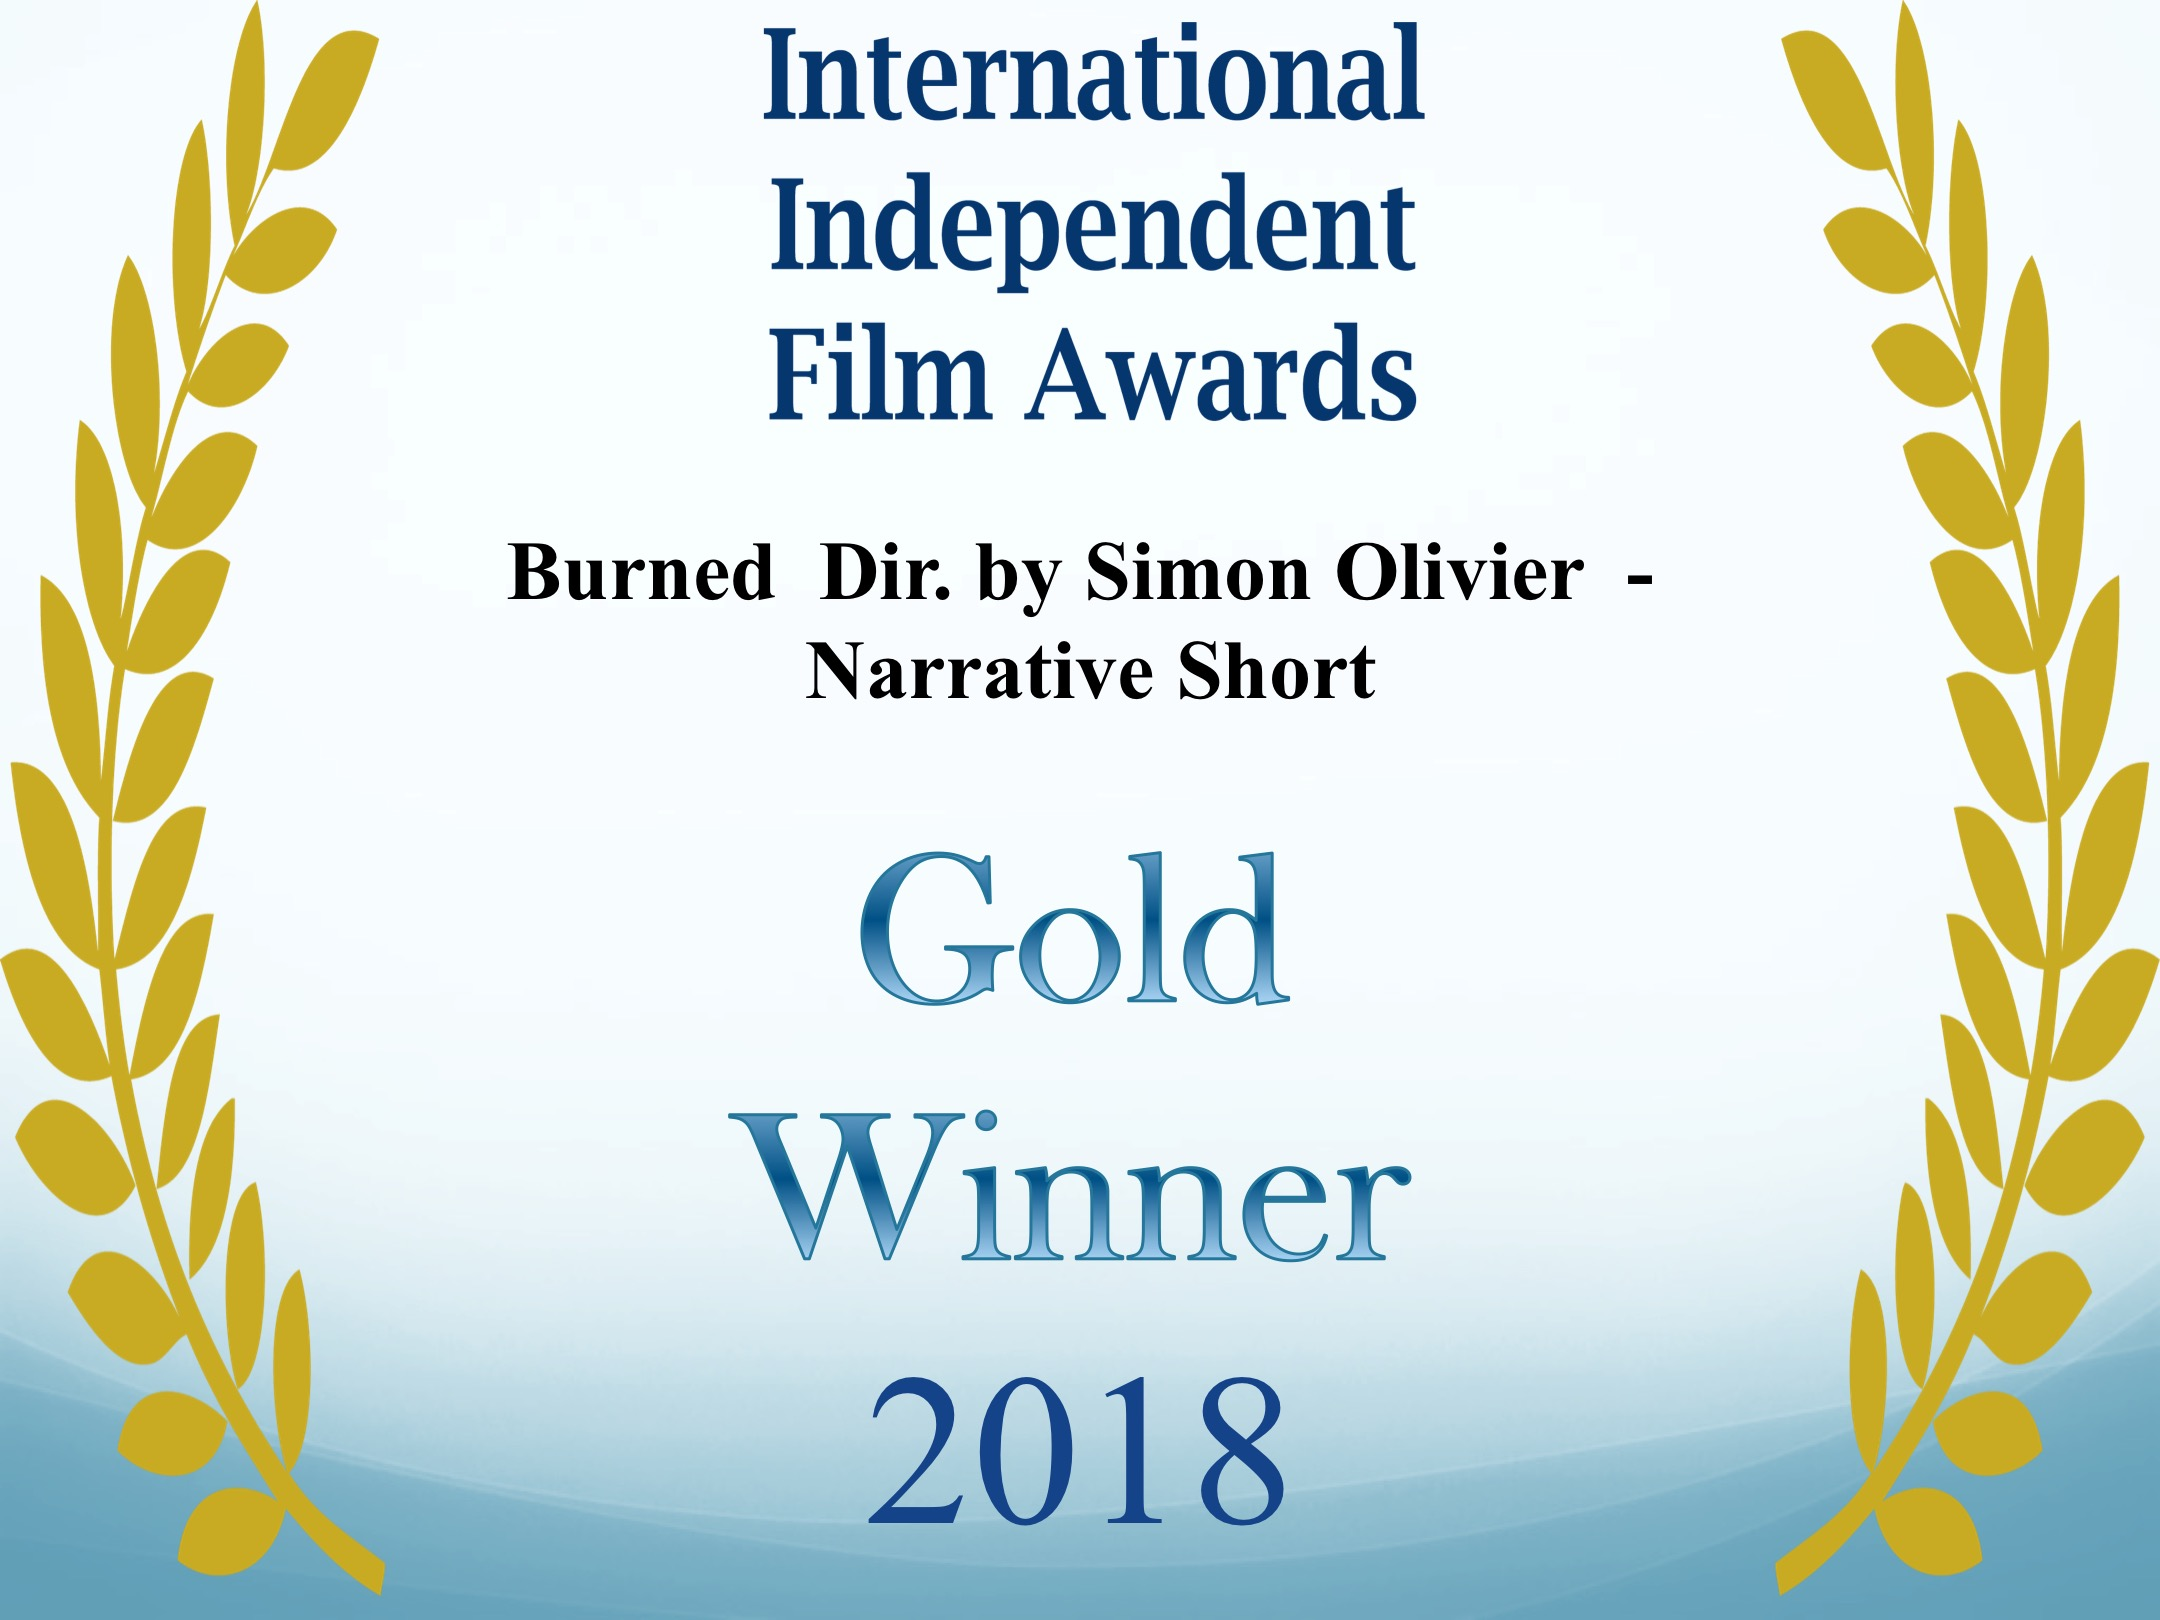 WINNER - GOLD - International Independent Film Awards - Narrative Short (Official - awful).jpg